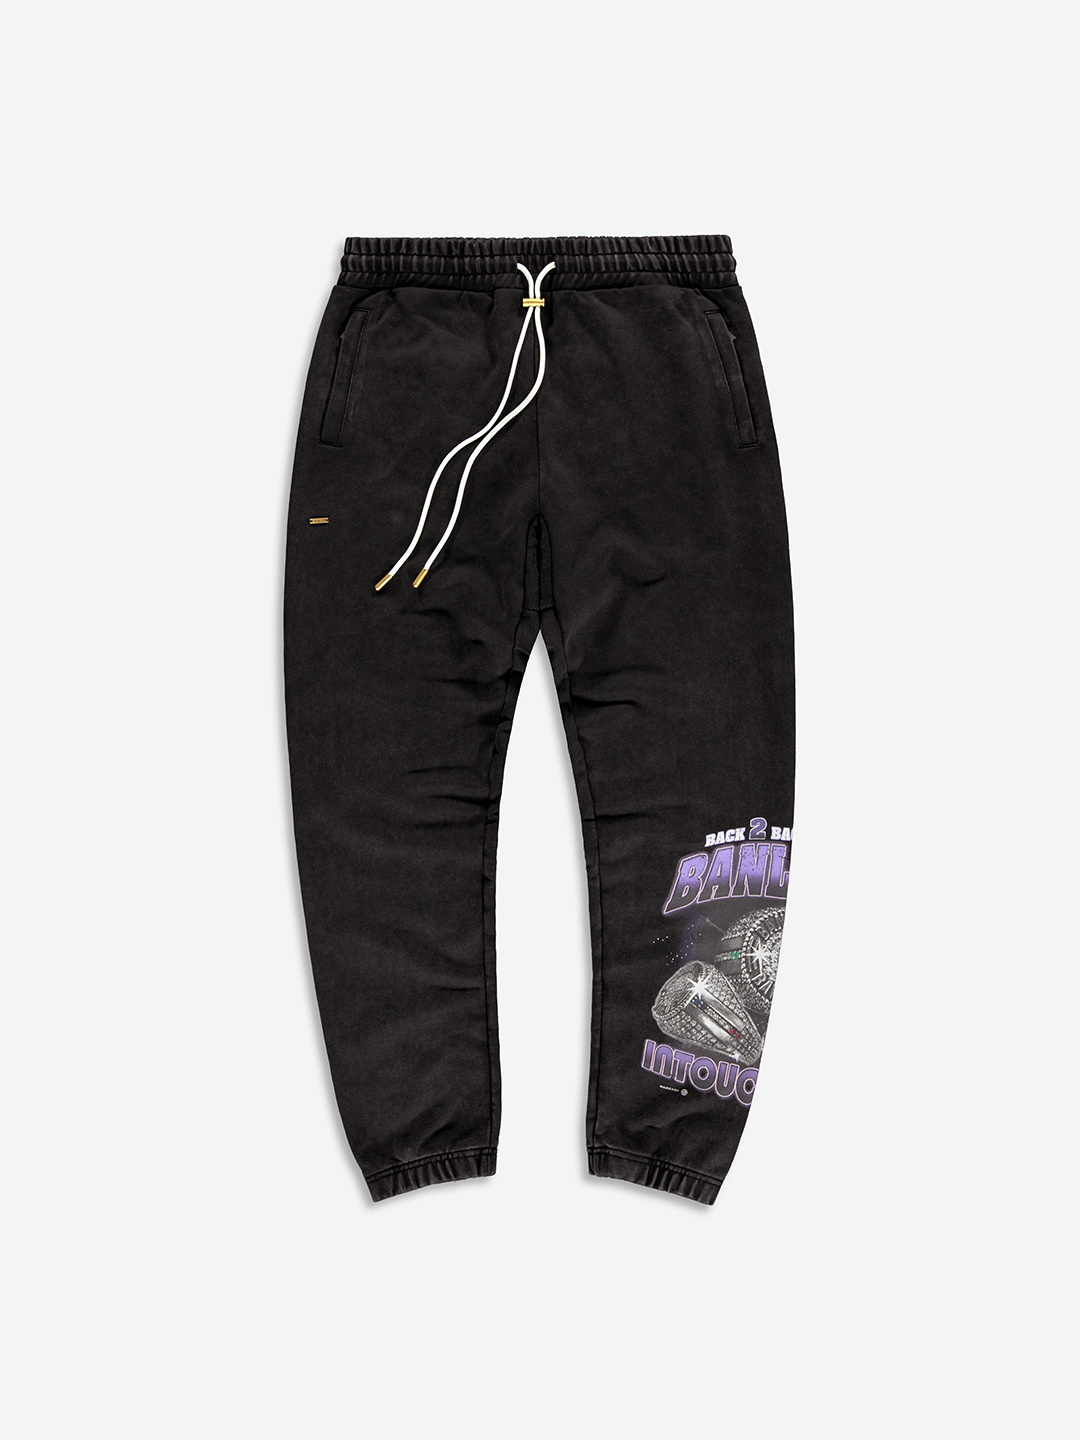 THREE PEAT SWEATPANTS VINTAGE BLACK